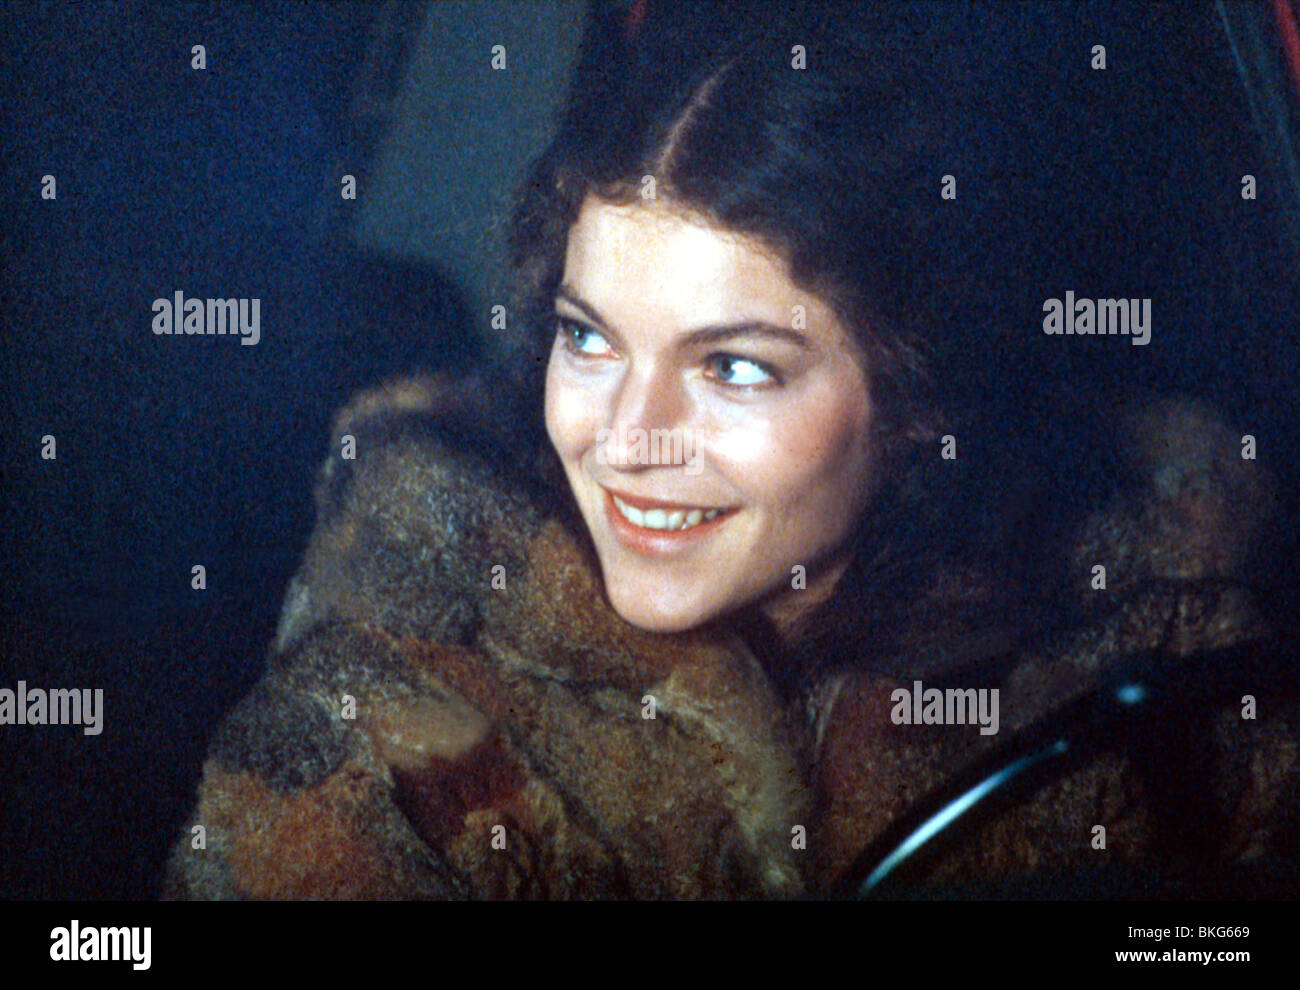 amy irving youtube